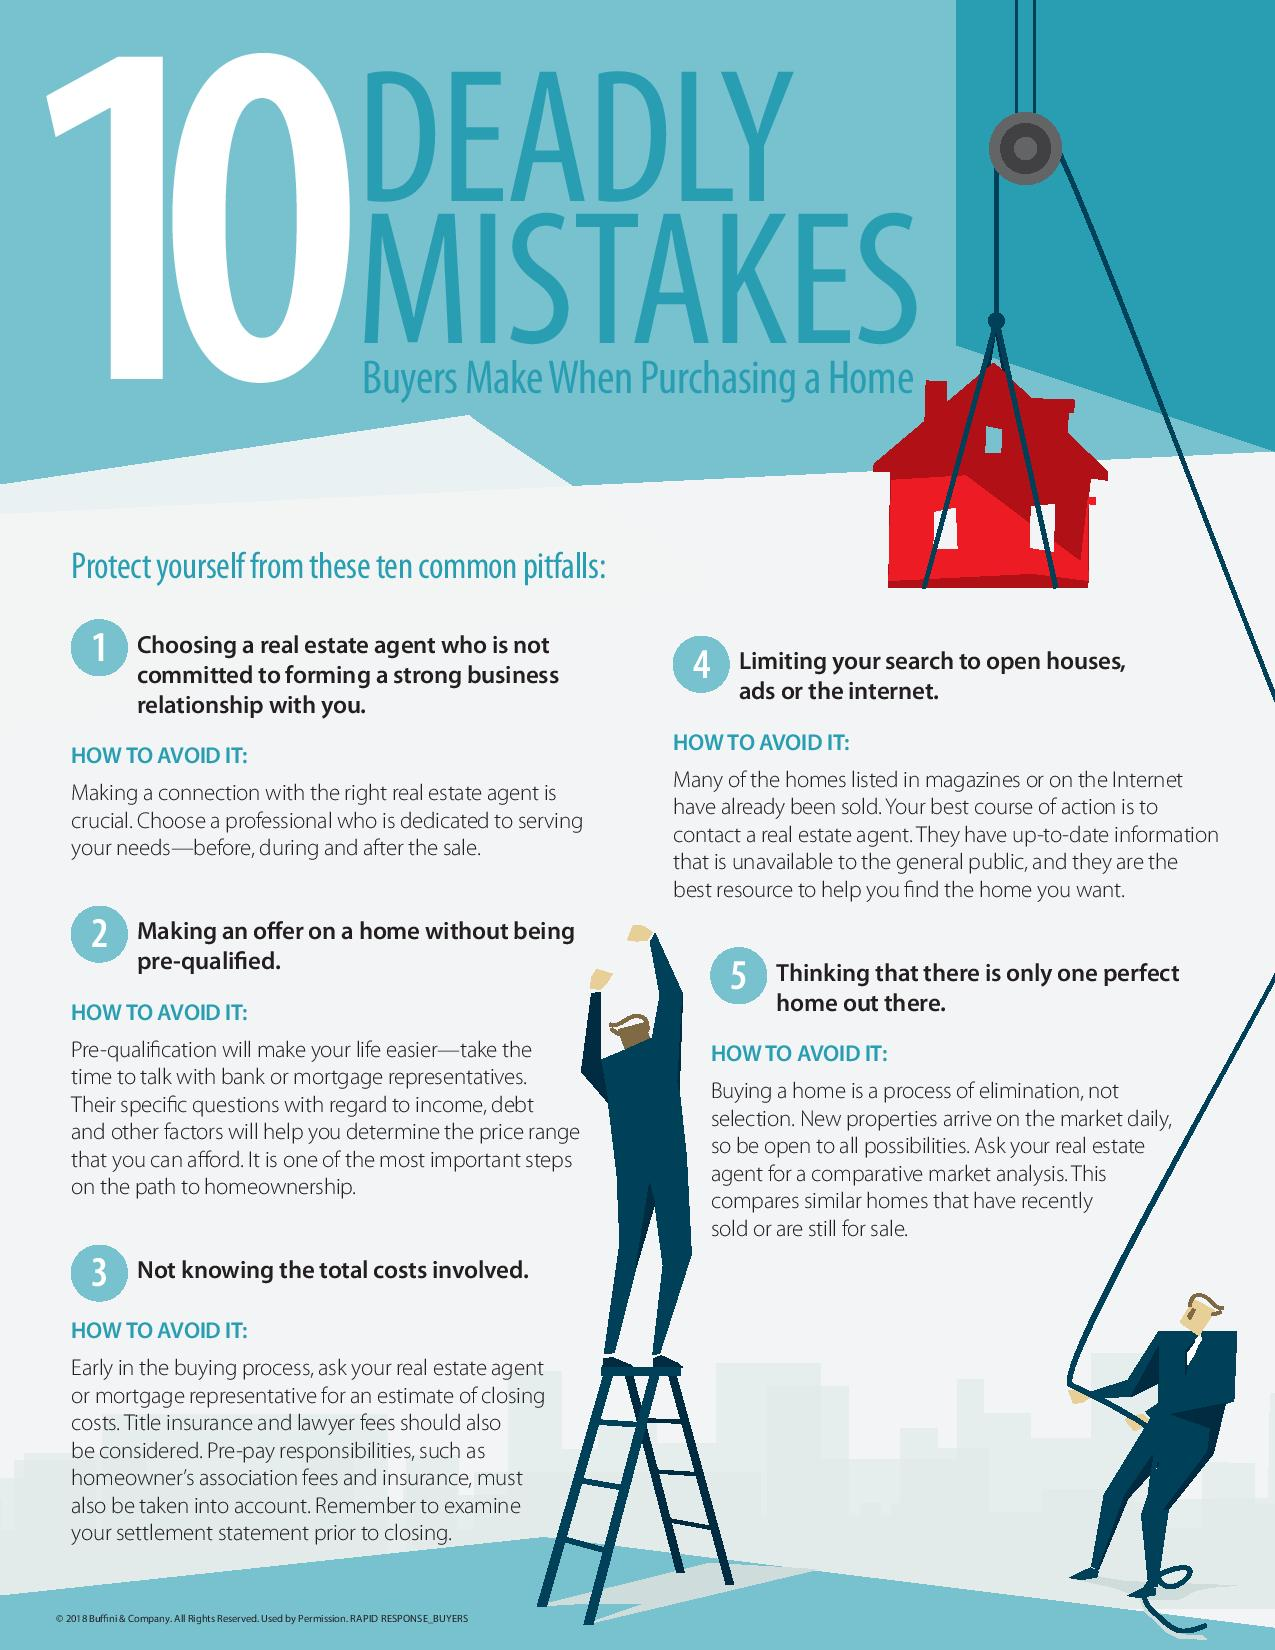 List of the first 5 deadly mistakes buyers make when purchasing a home